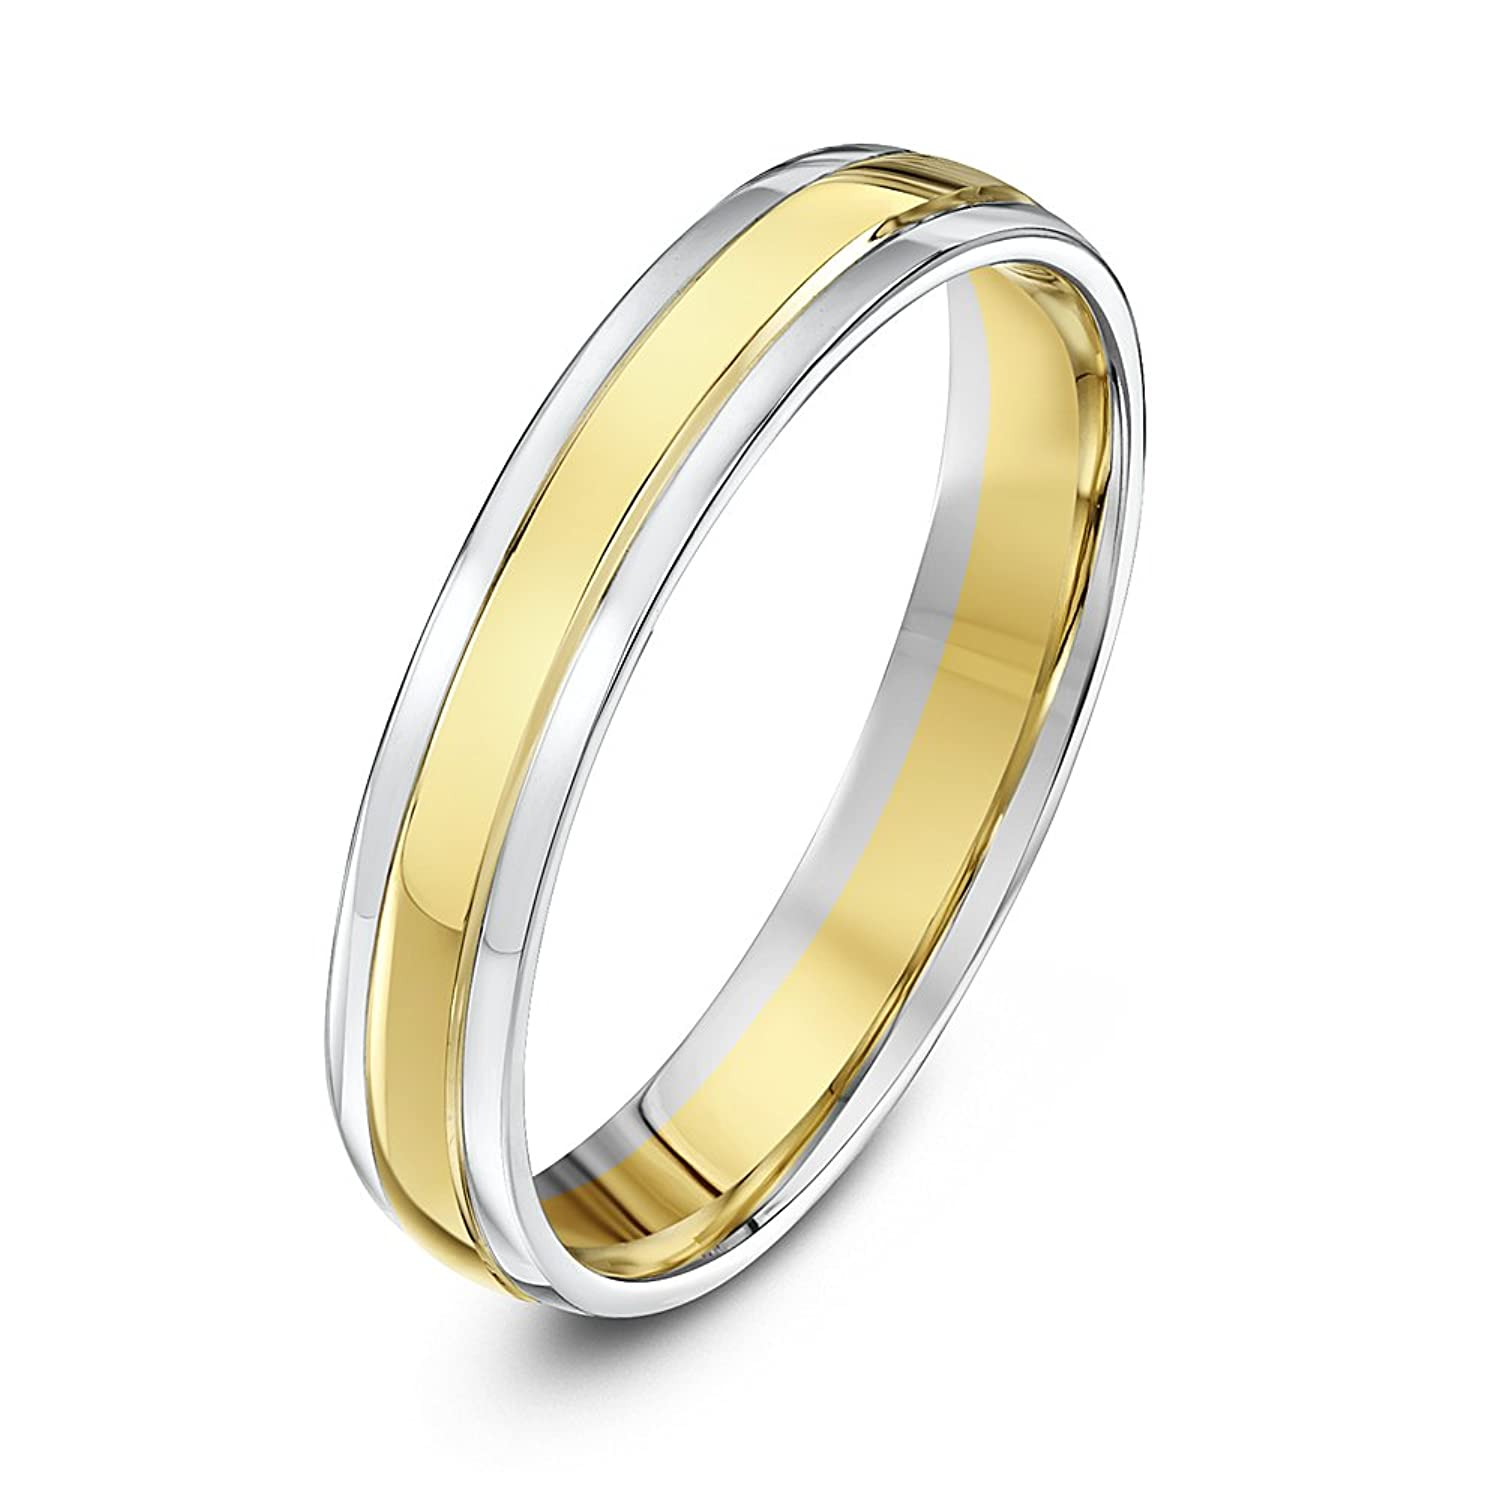 theia uni court shape 9 ct yellow and white gold wedding ring